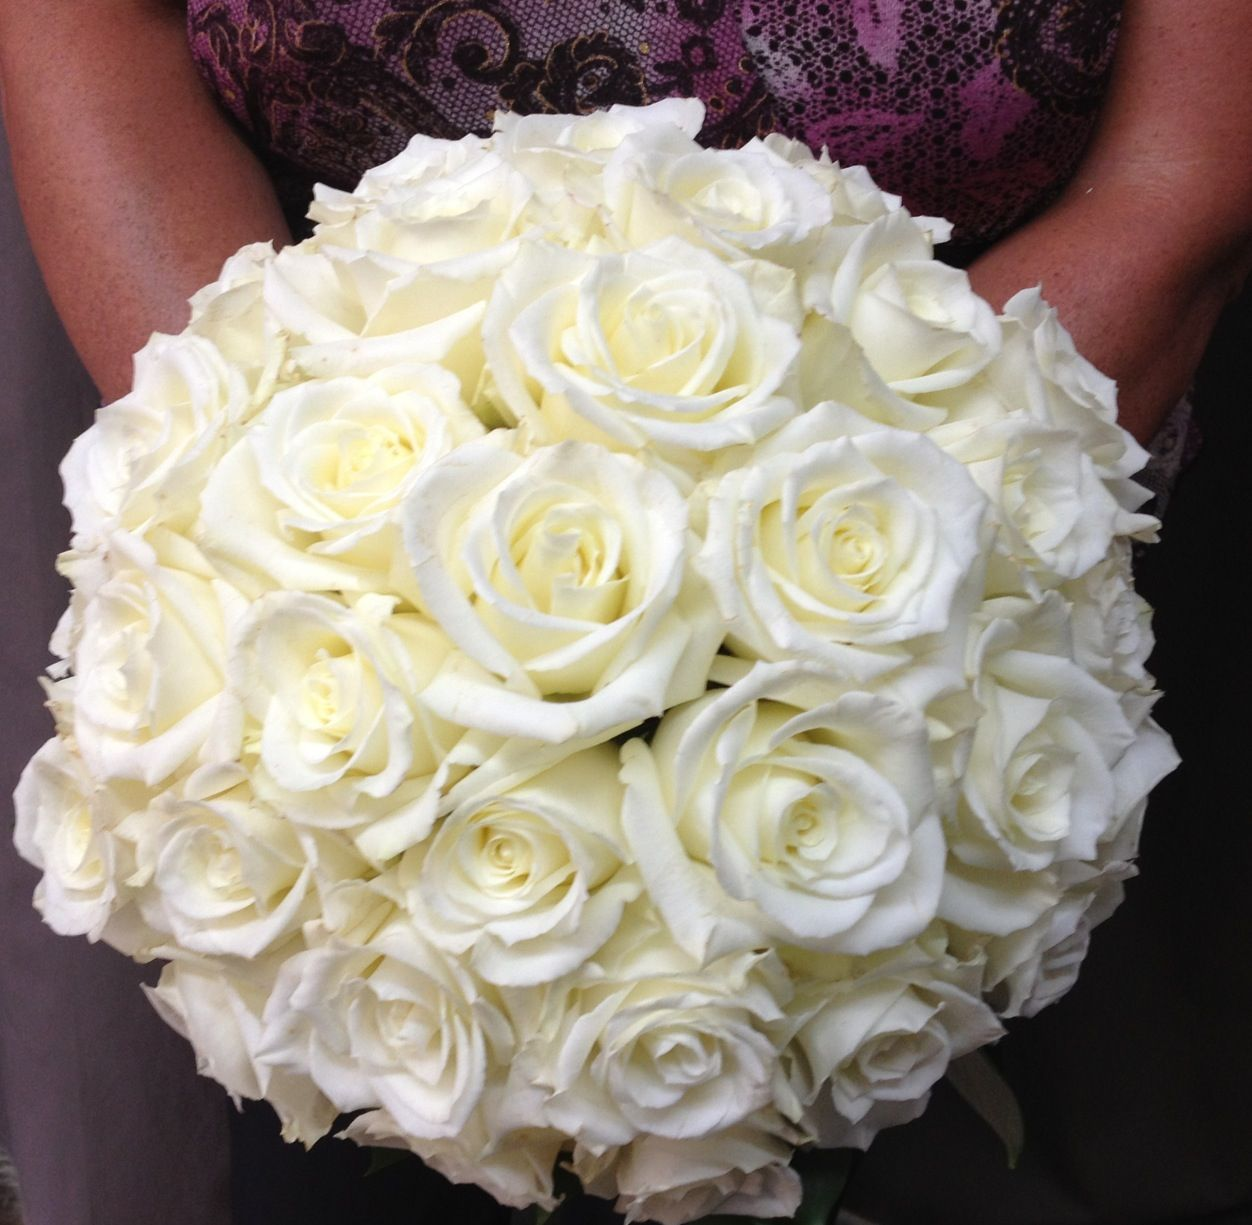 Wedding bouquets not flowers  Beautiful and elegant wedding bouquet All white roses makes for a